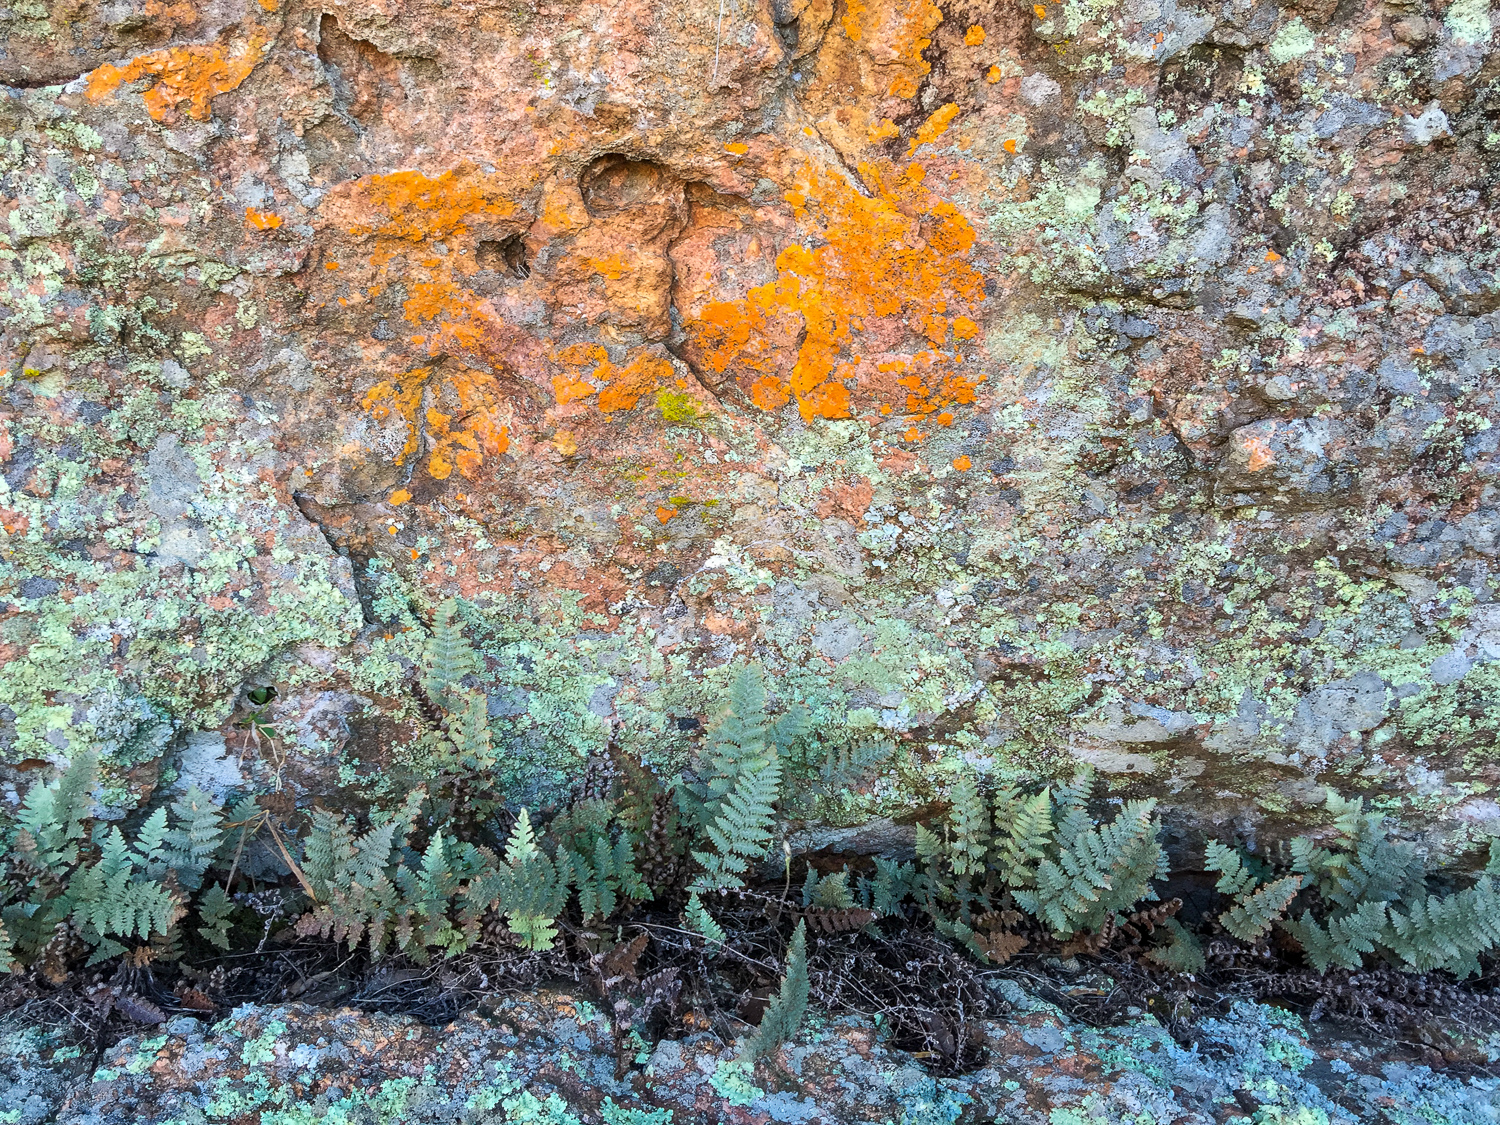 Lichen and Ferns